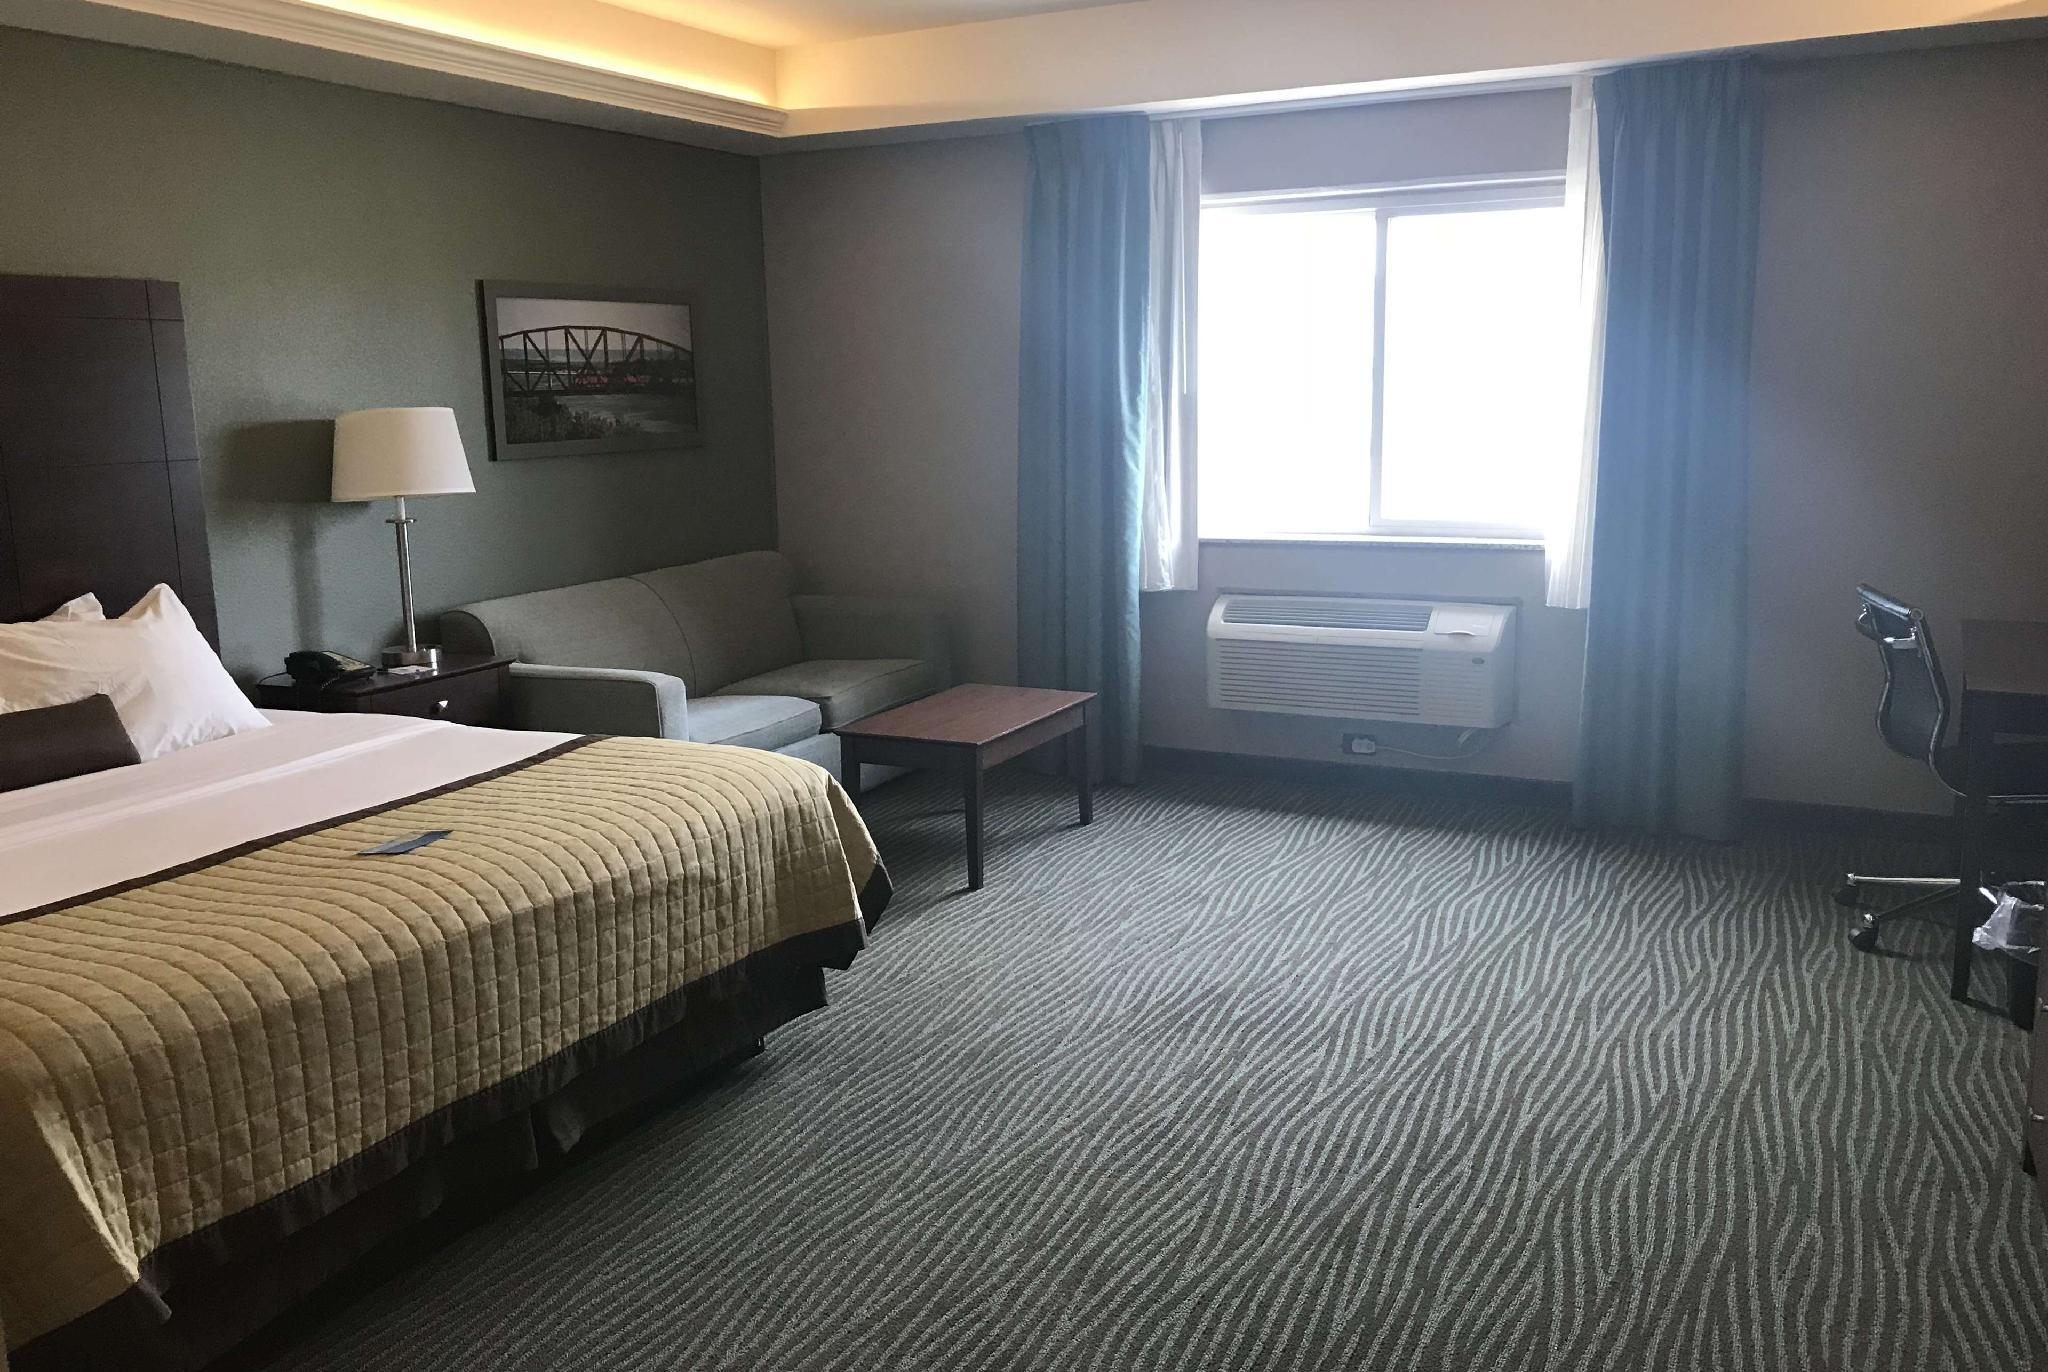 1 King Bed, Business Room, City View, Non-Smoking